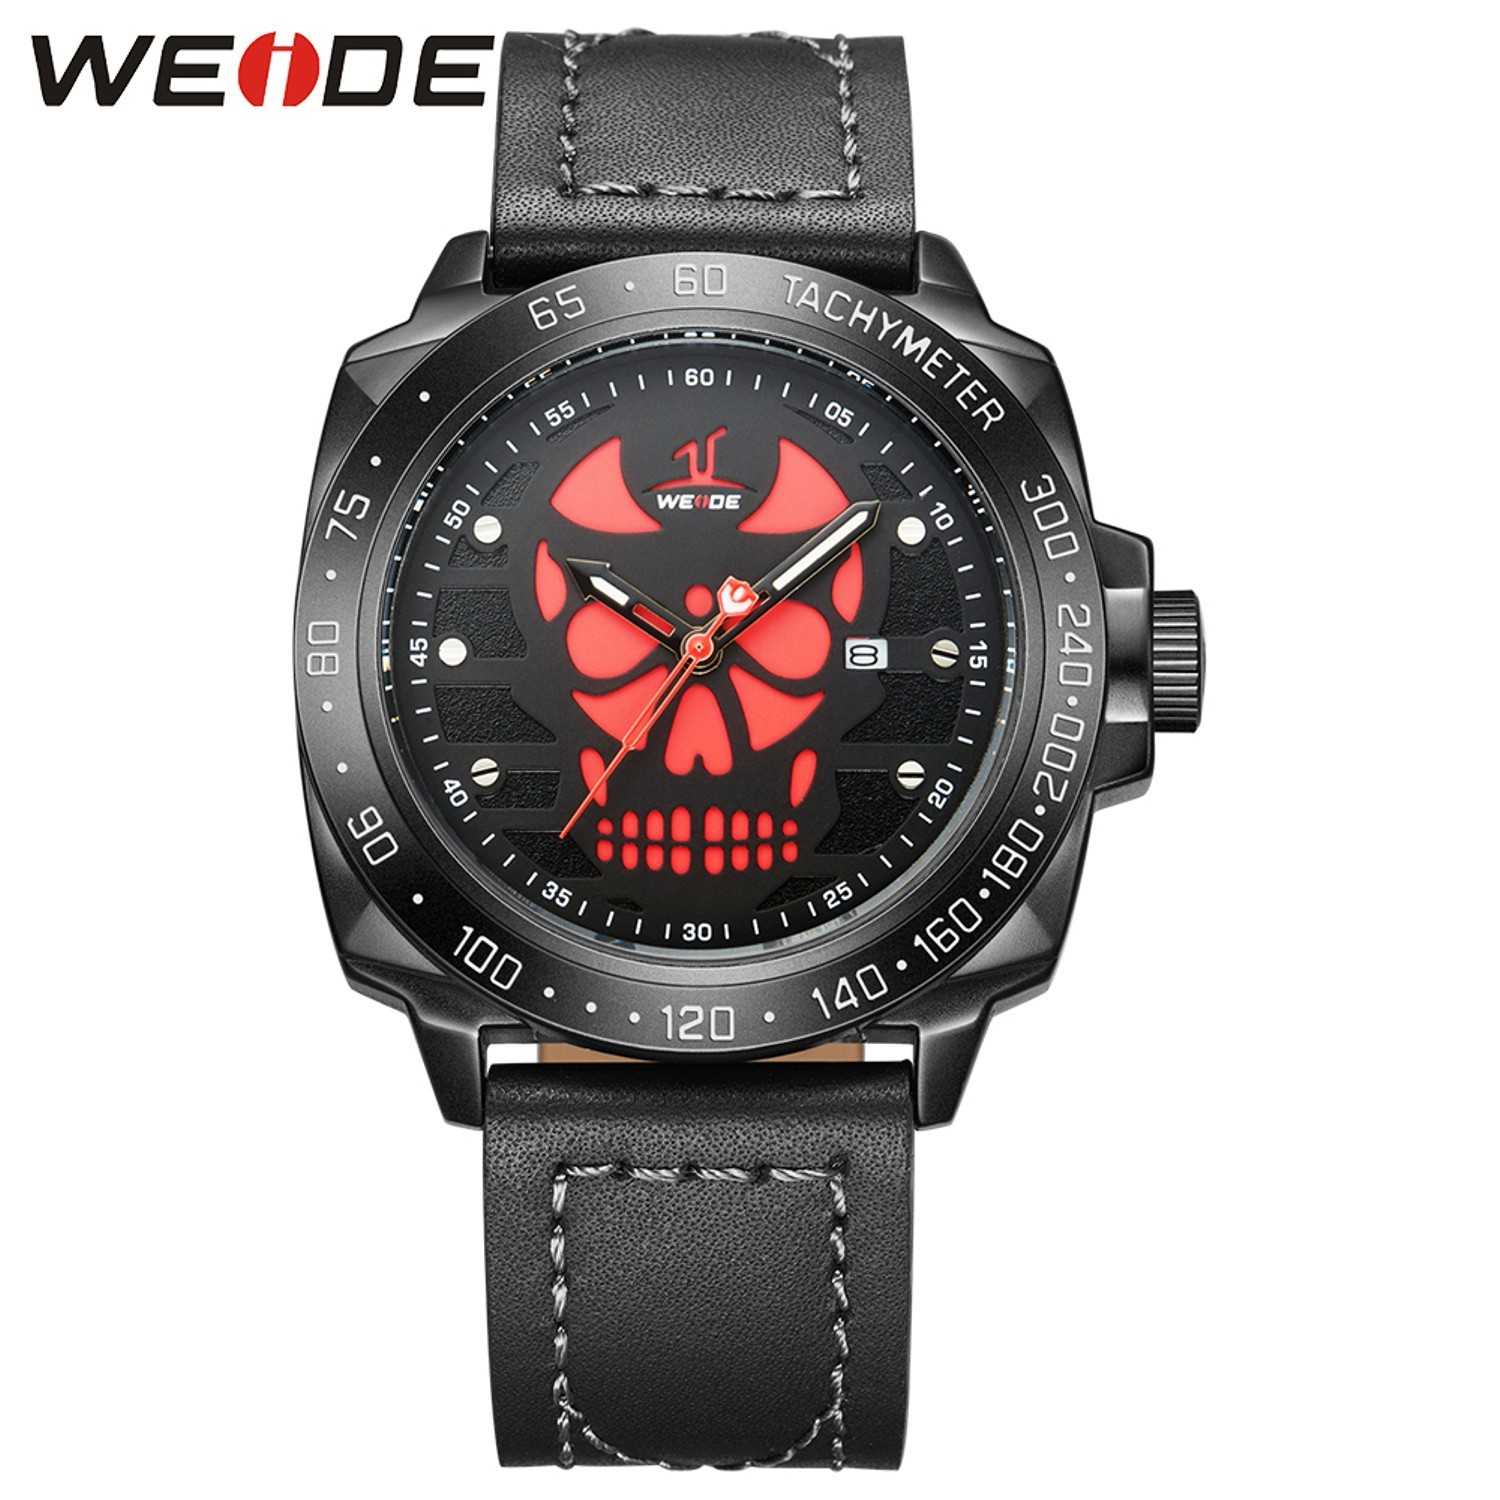 WEIDE-Luxury-Brand-Watches-Quartz-Movement-Date-Calendar-3ATM-Water-Resistant-Analog-Dial-Display-Leather-Strap_1500x1500_STRETCH_199.jpg